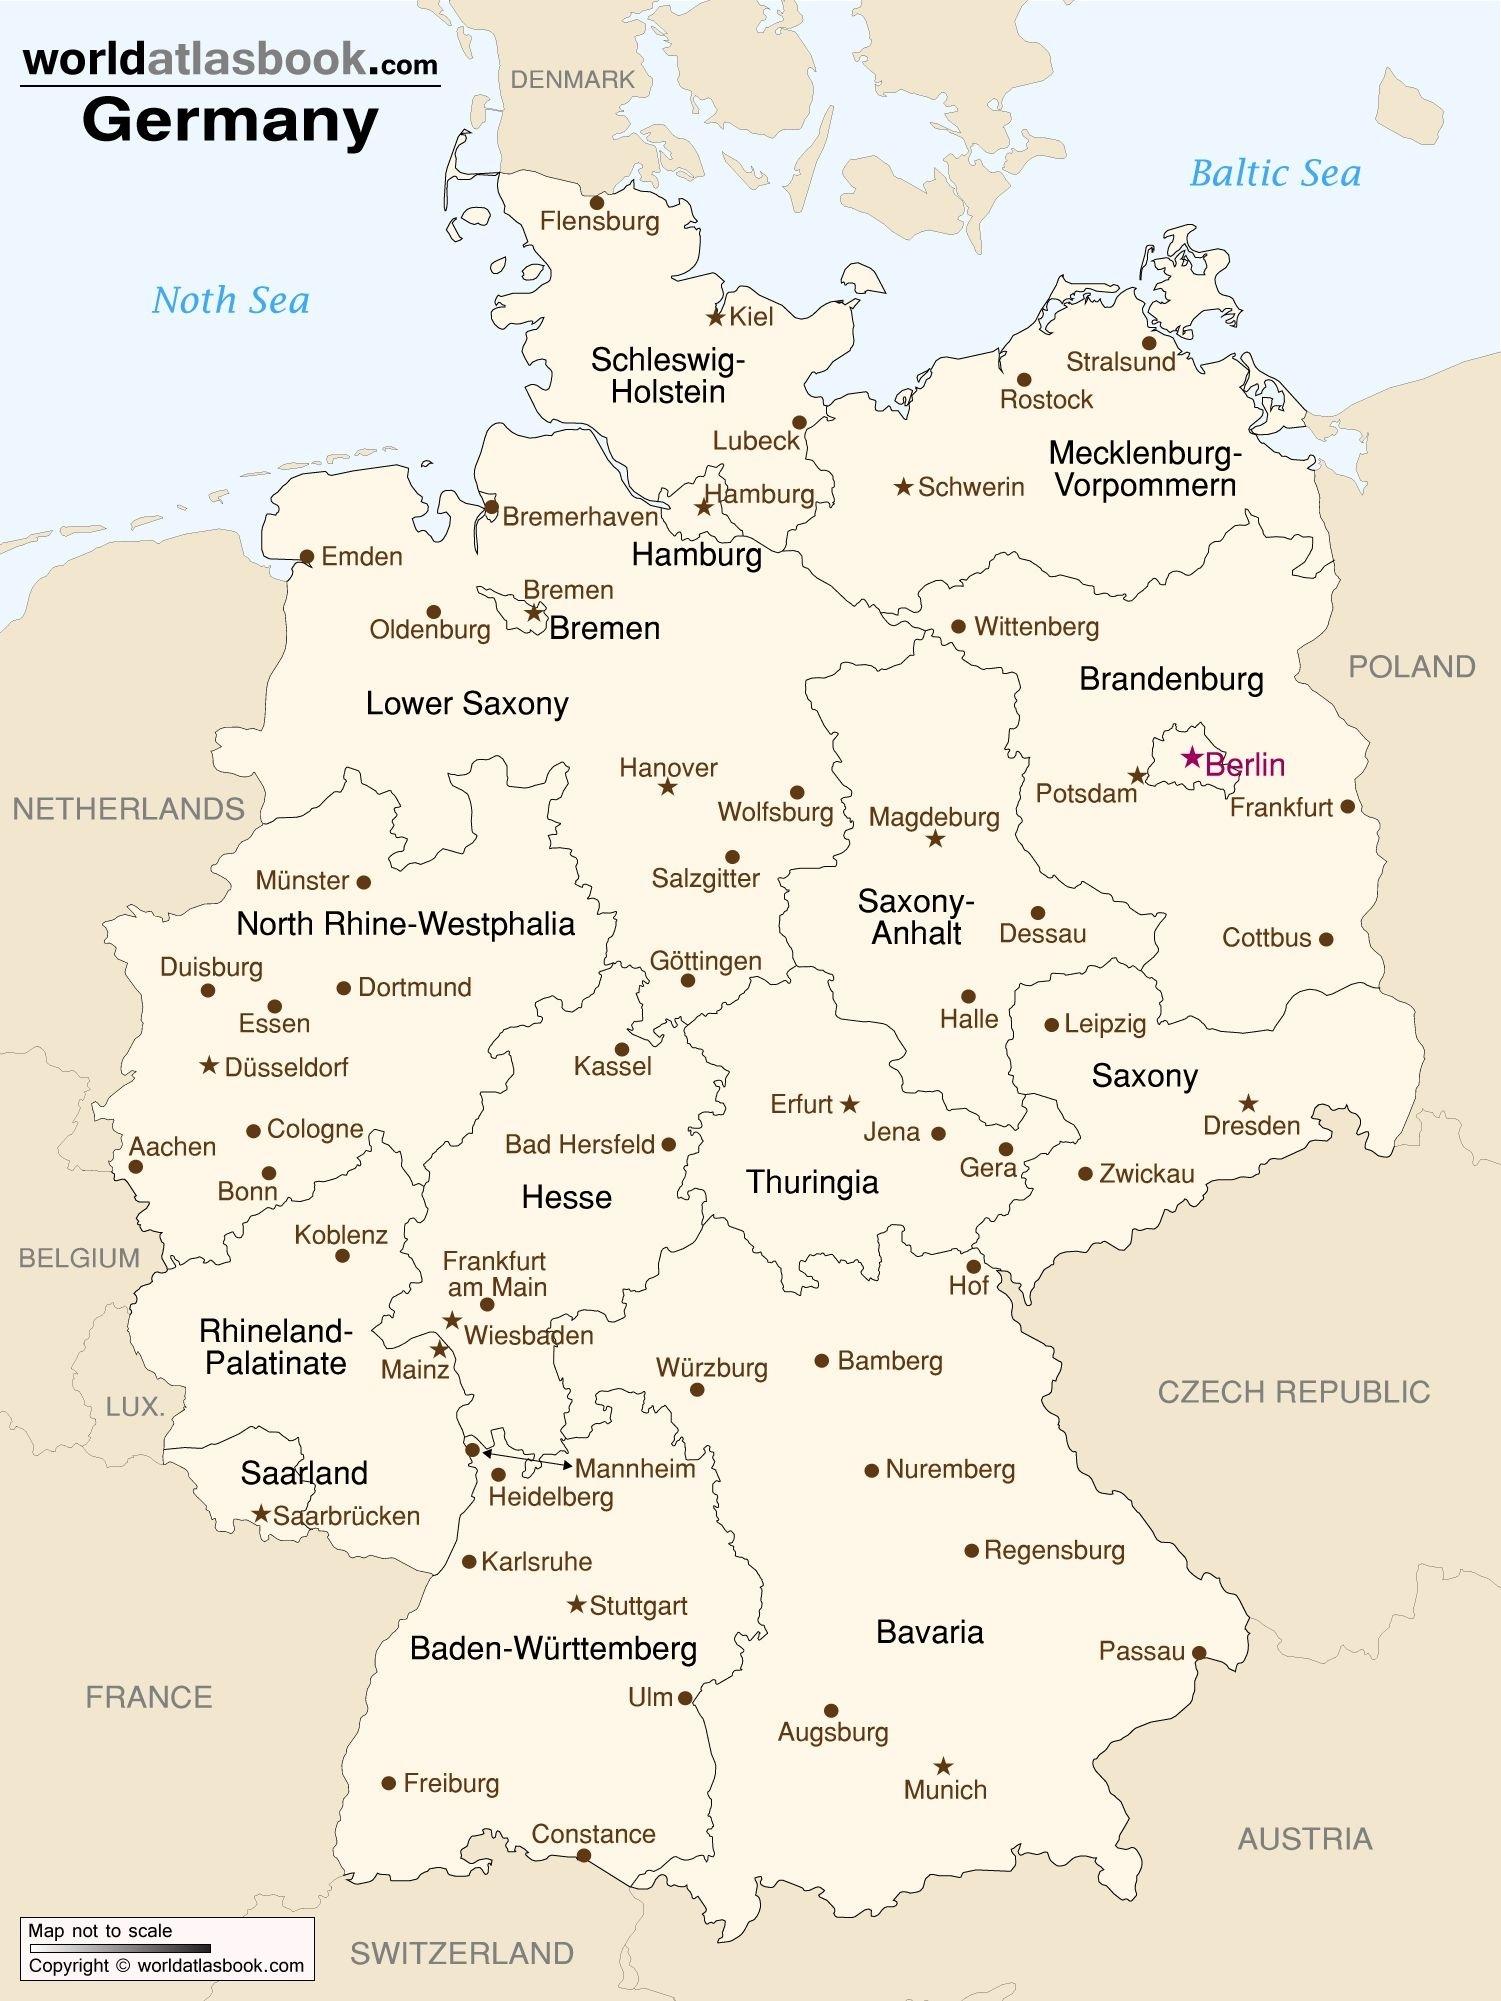 Map Of Germany With States And Cities   Germany   Map, Germany for Map Of Germany And Austria With Cities